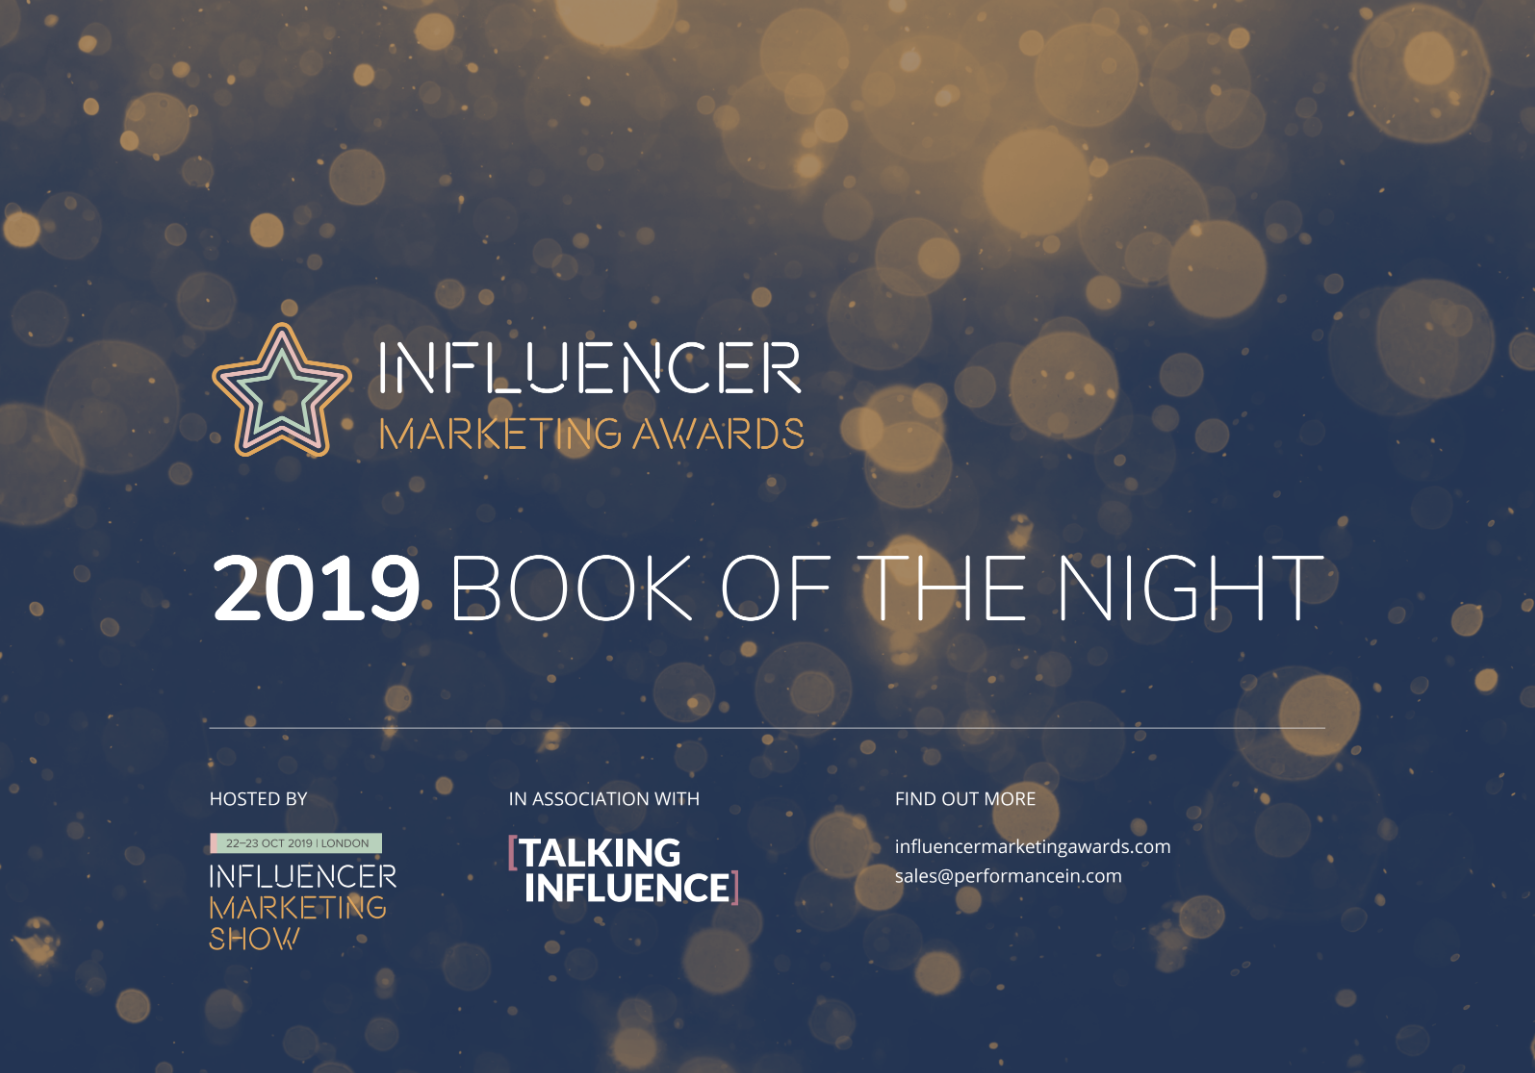 Influencer Marketing Awards Book of the Night